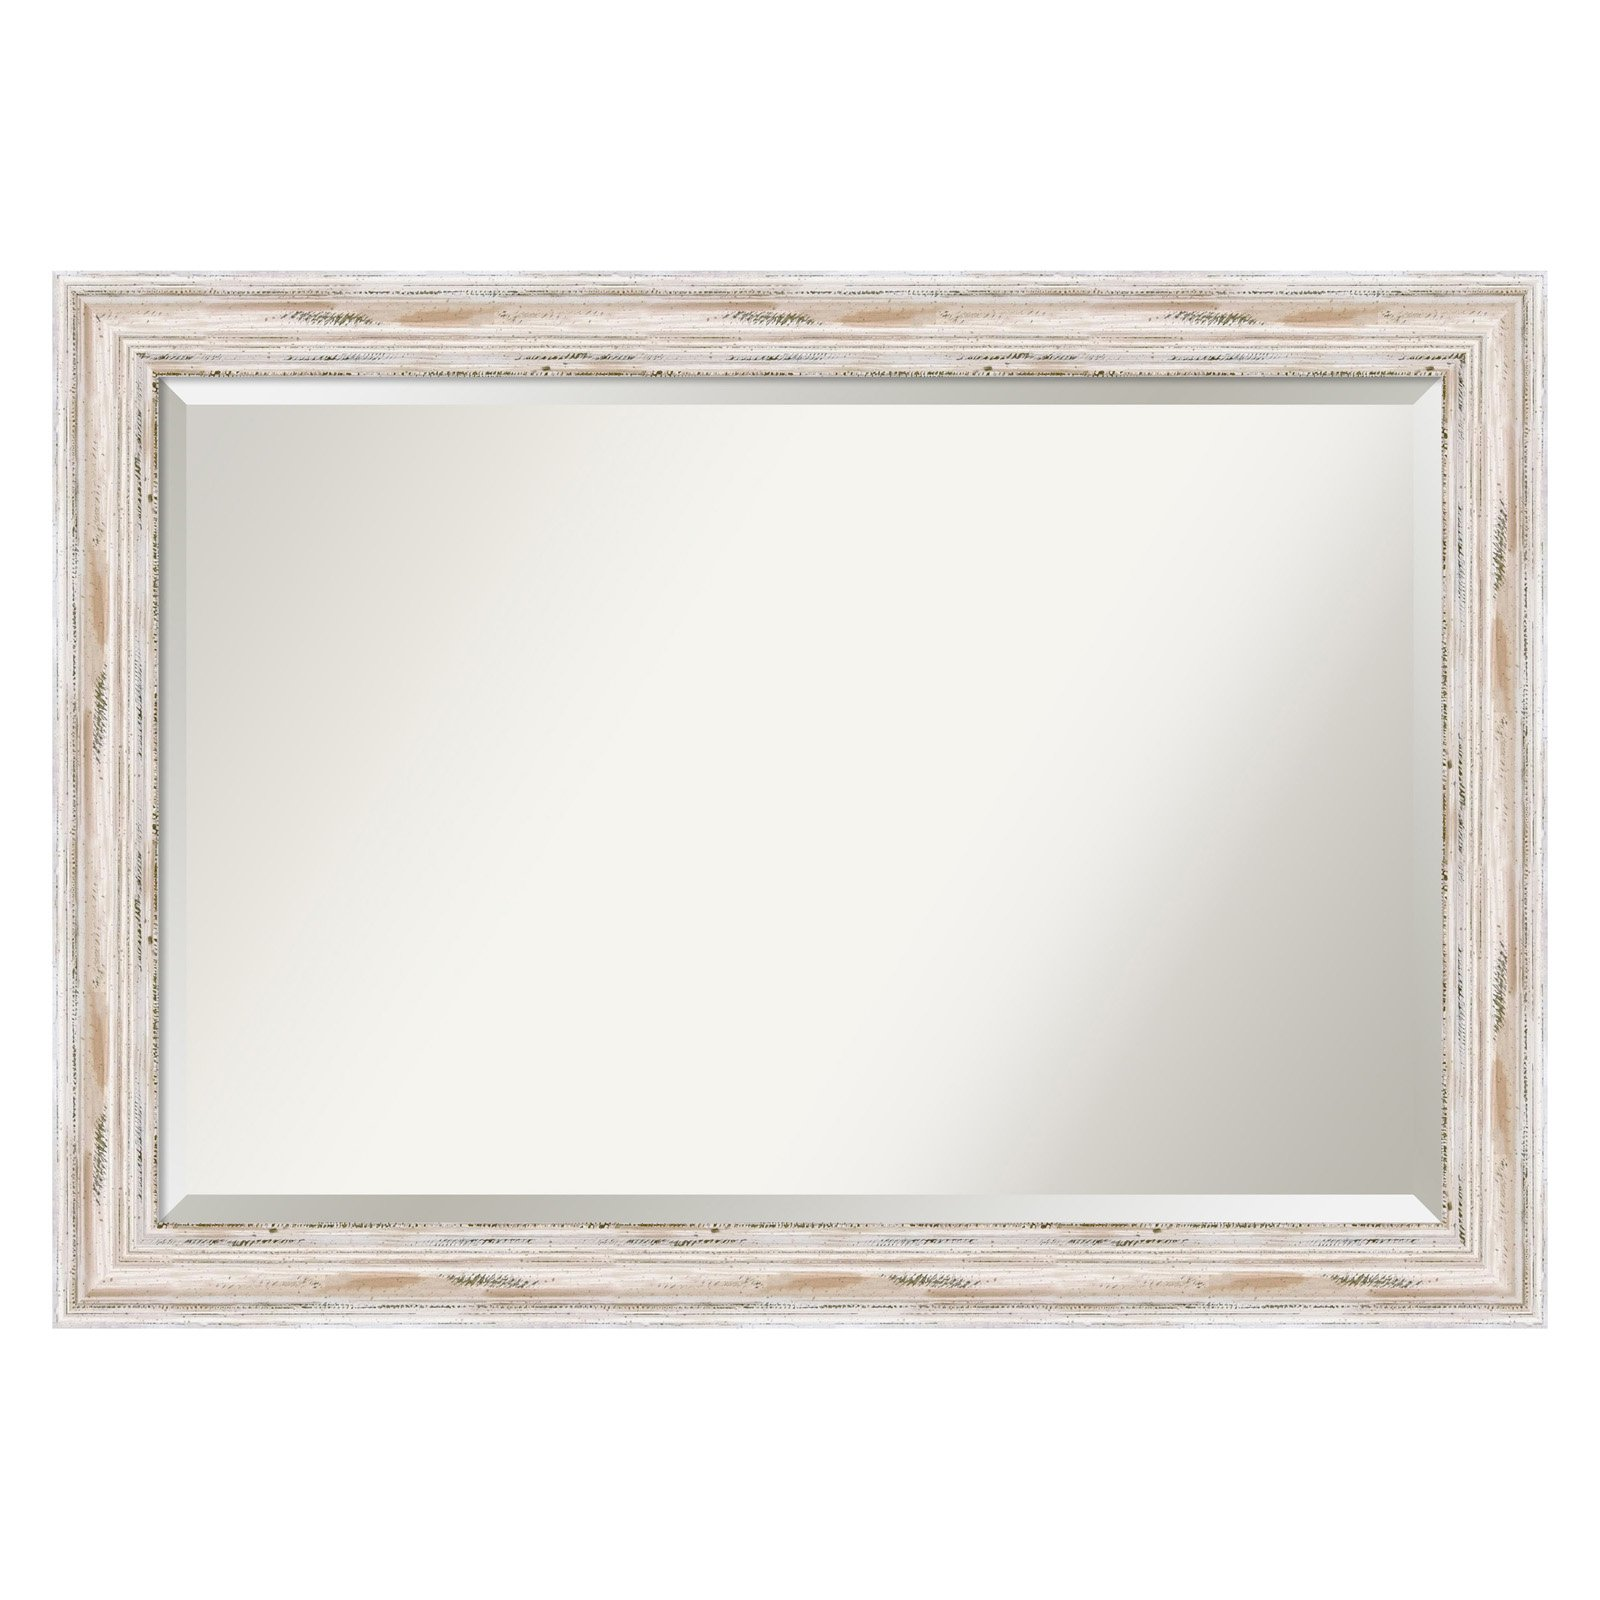 Amanti Art Alexandria Wall Mirror 41W x 29H in. by Amanti Art